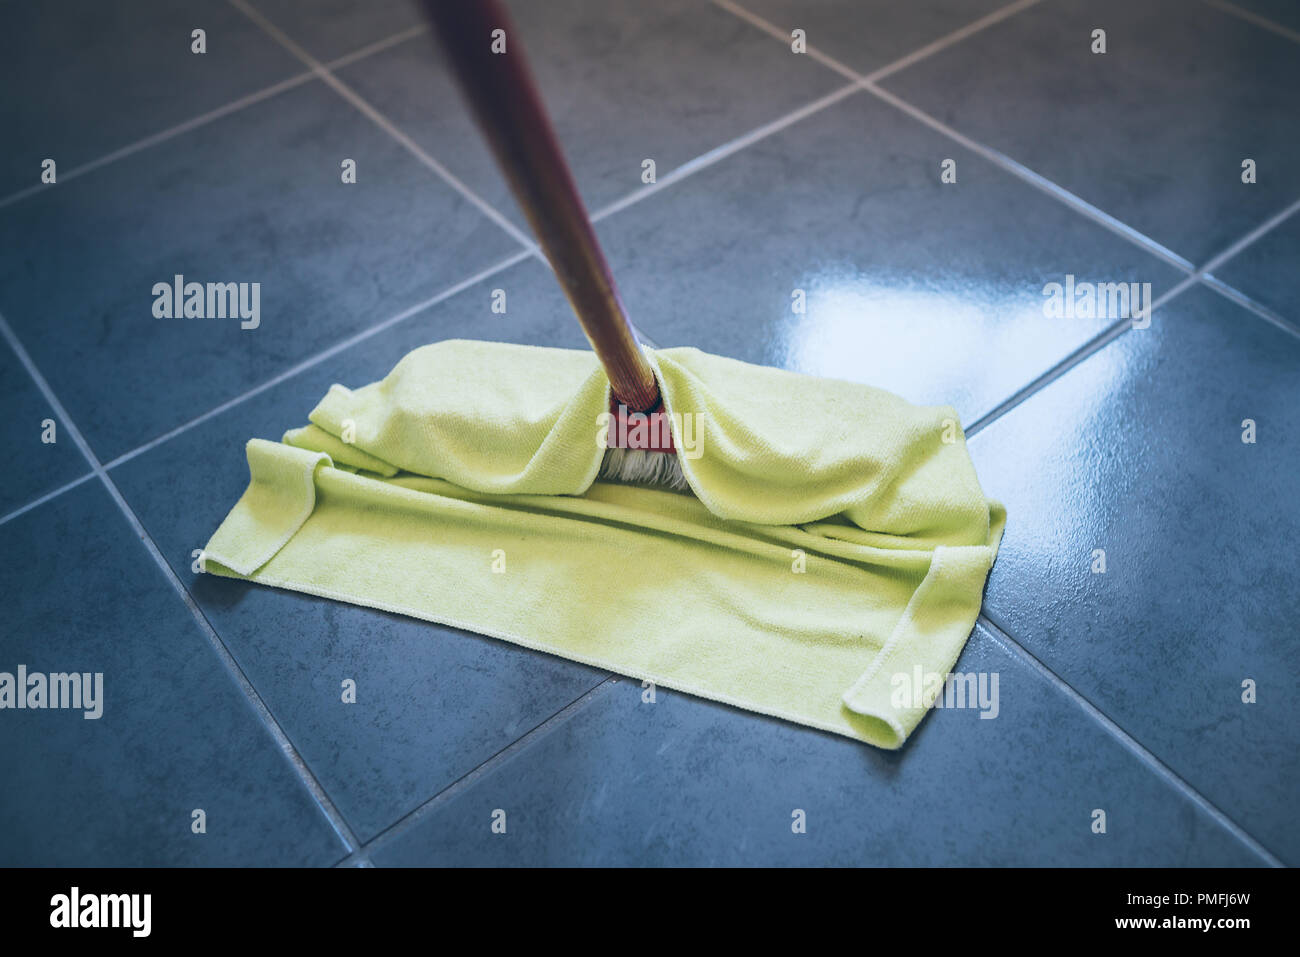 damp wiping tiled floor with floor cleaning cloth - Stock Image